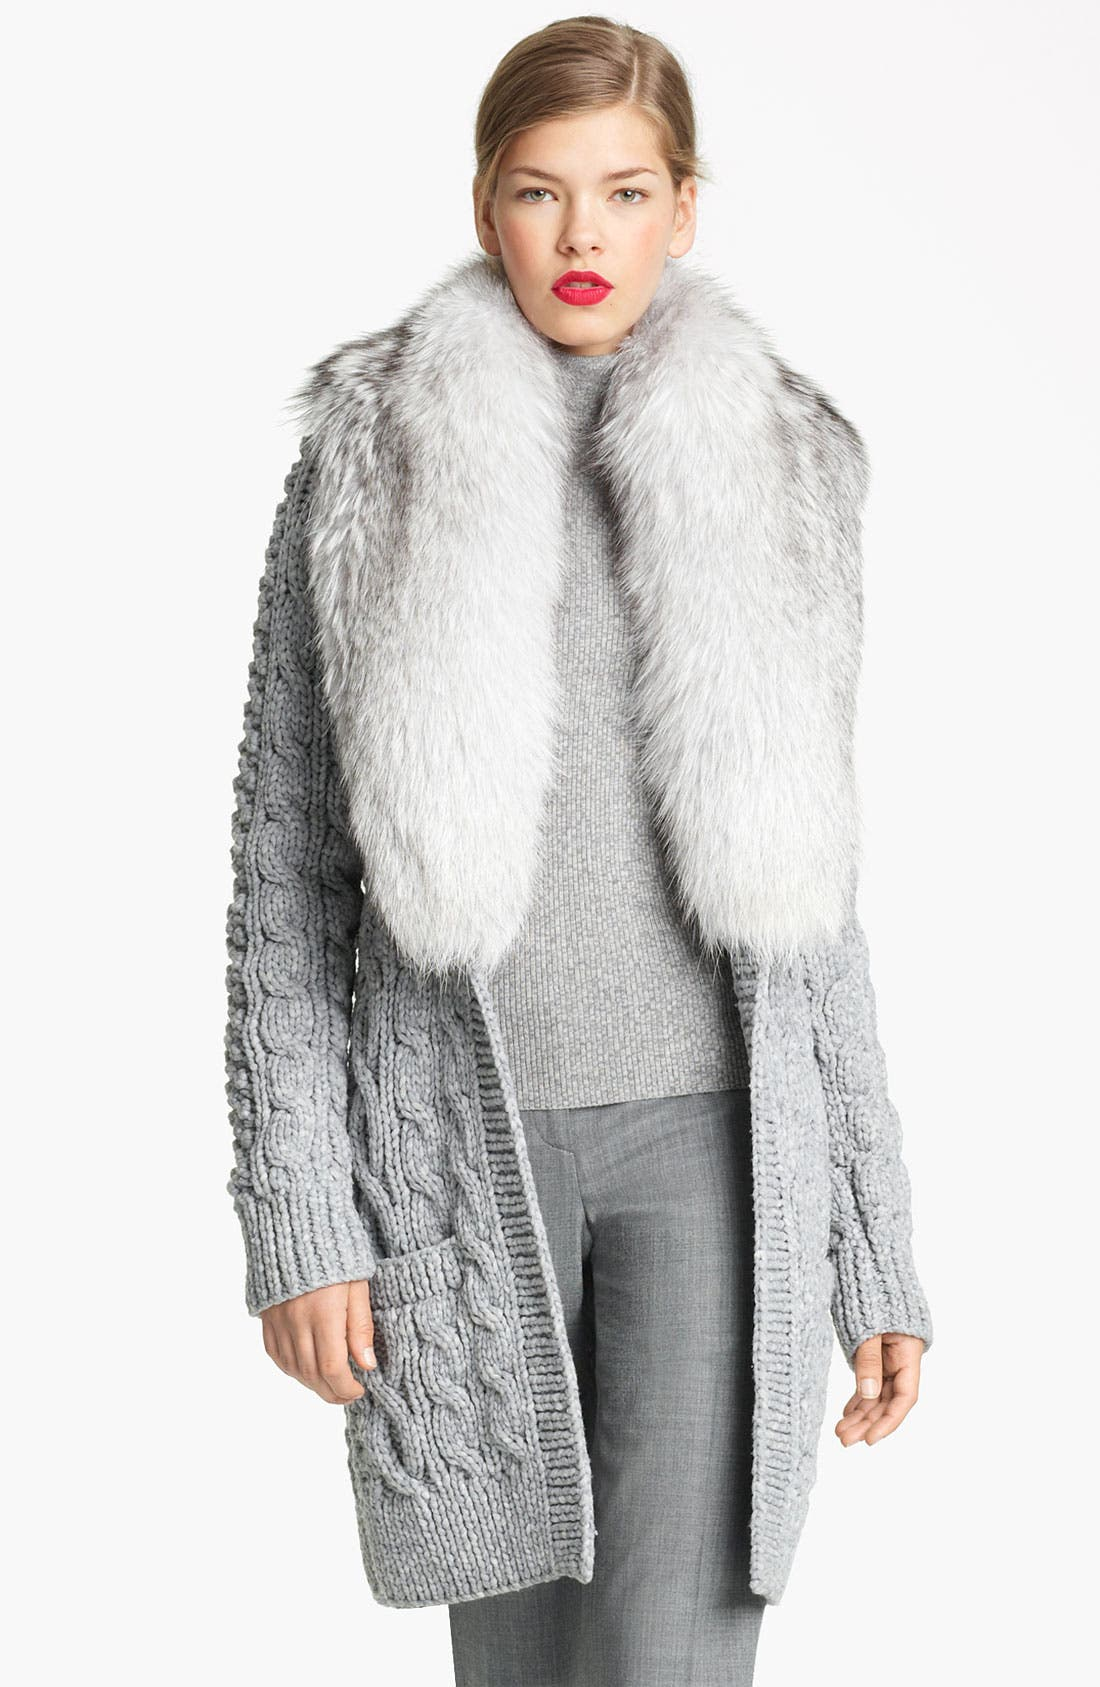 Main Image - Michael Kors Genuine Fox Fur Collar Cardigan